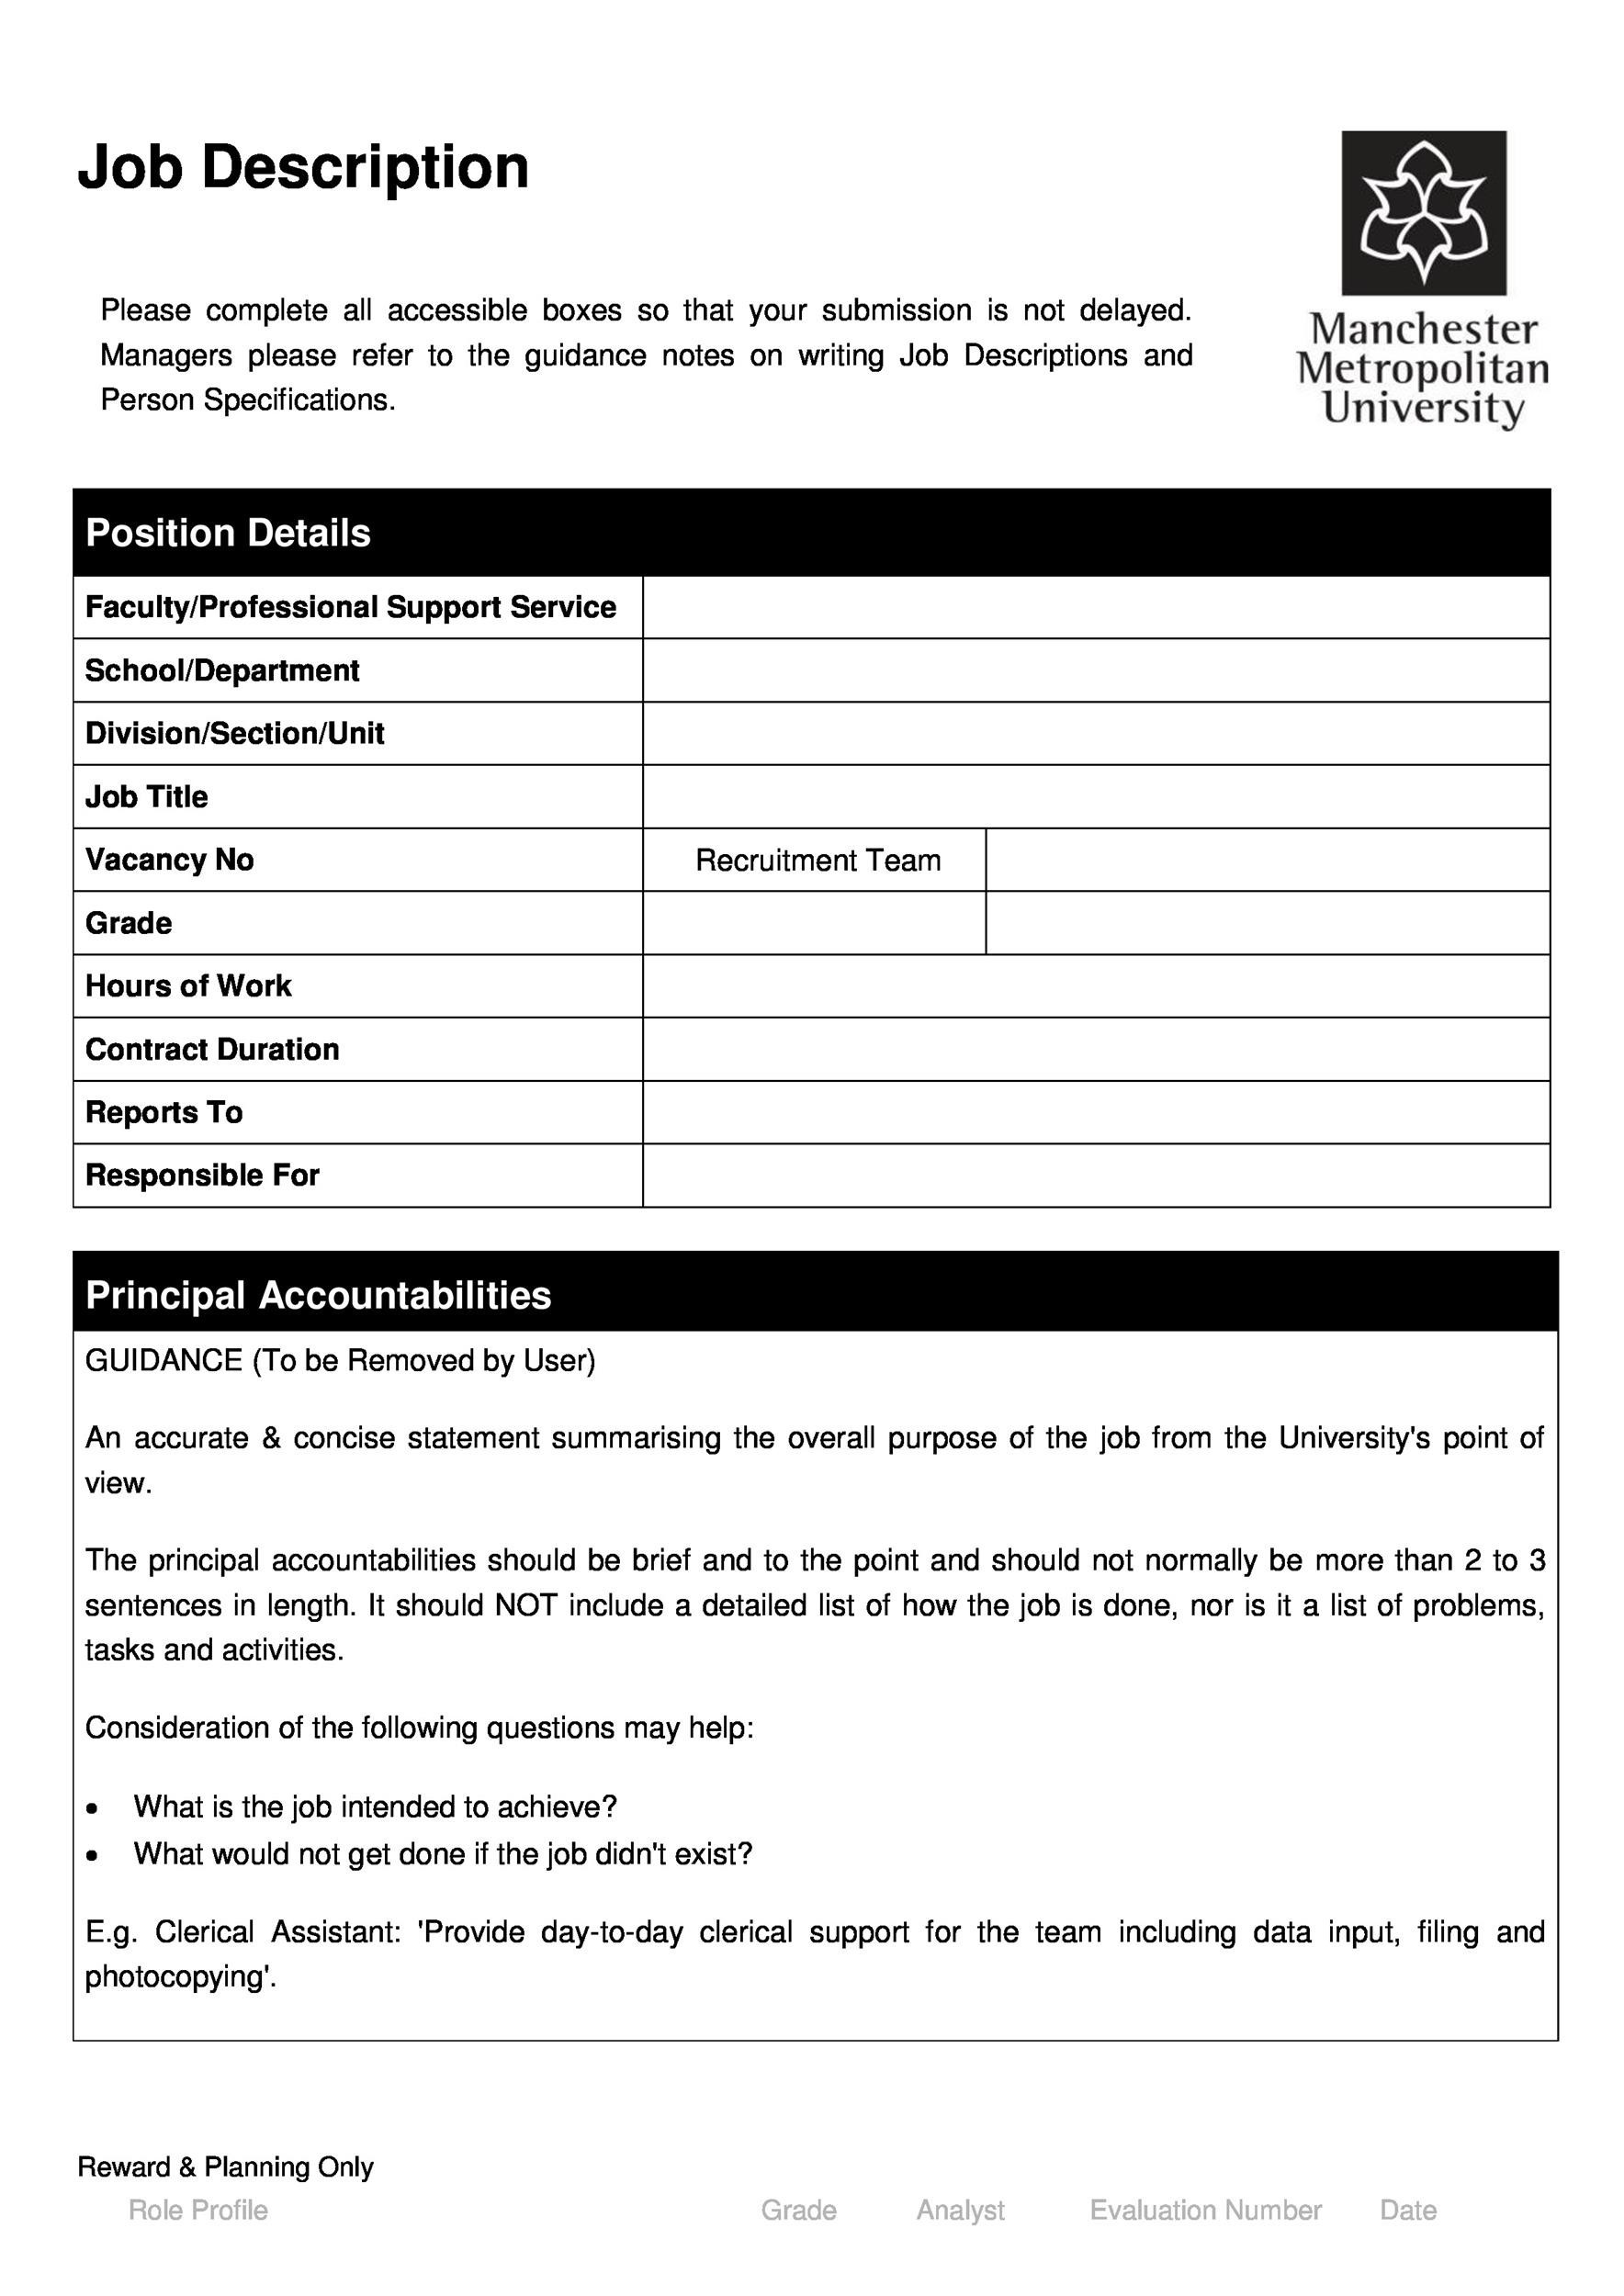 Job Description Template 34